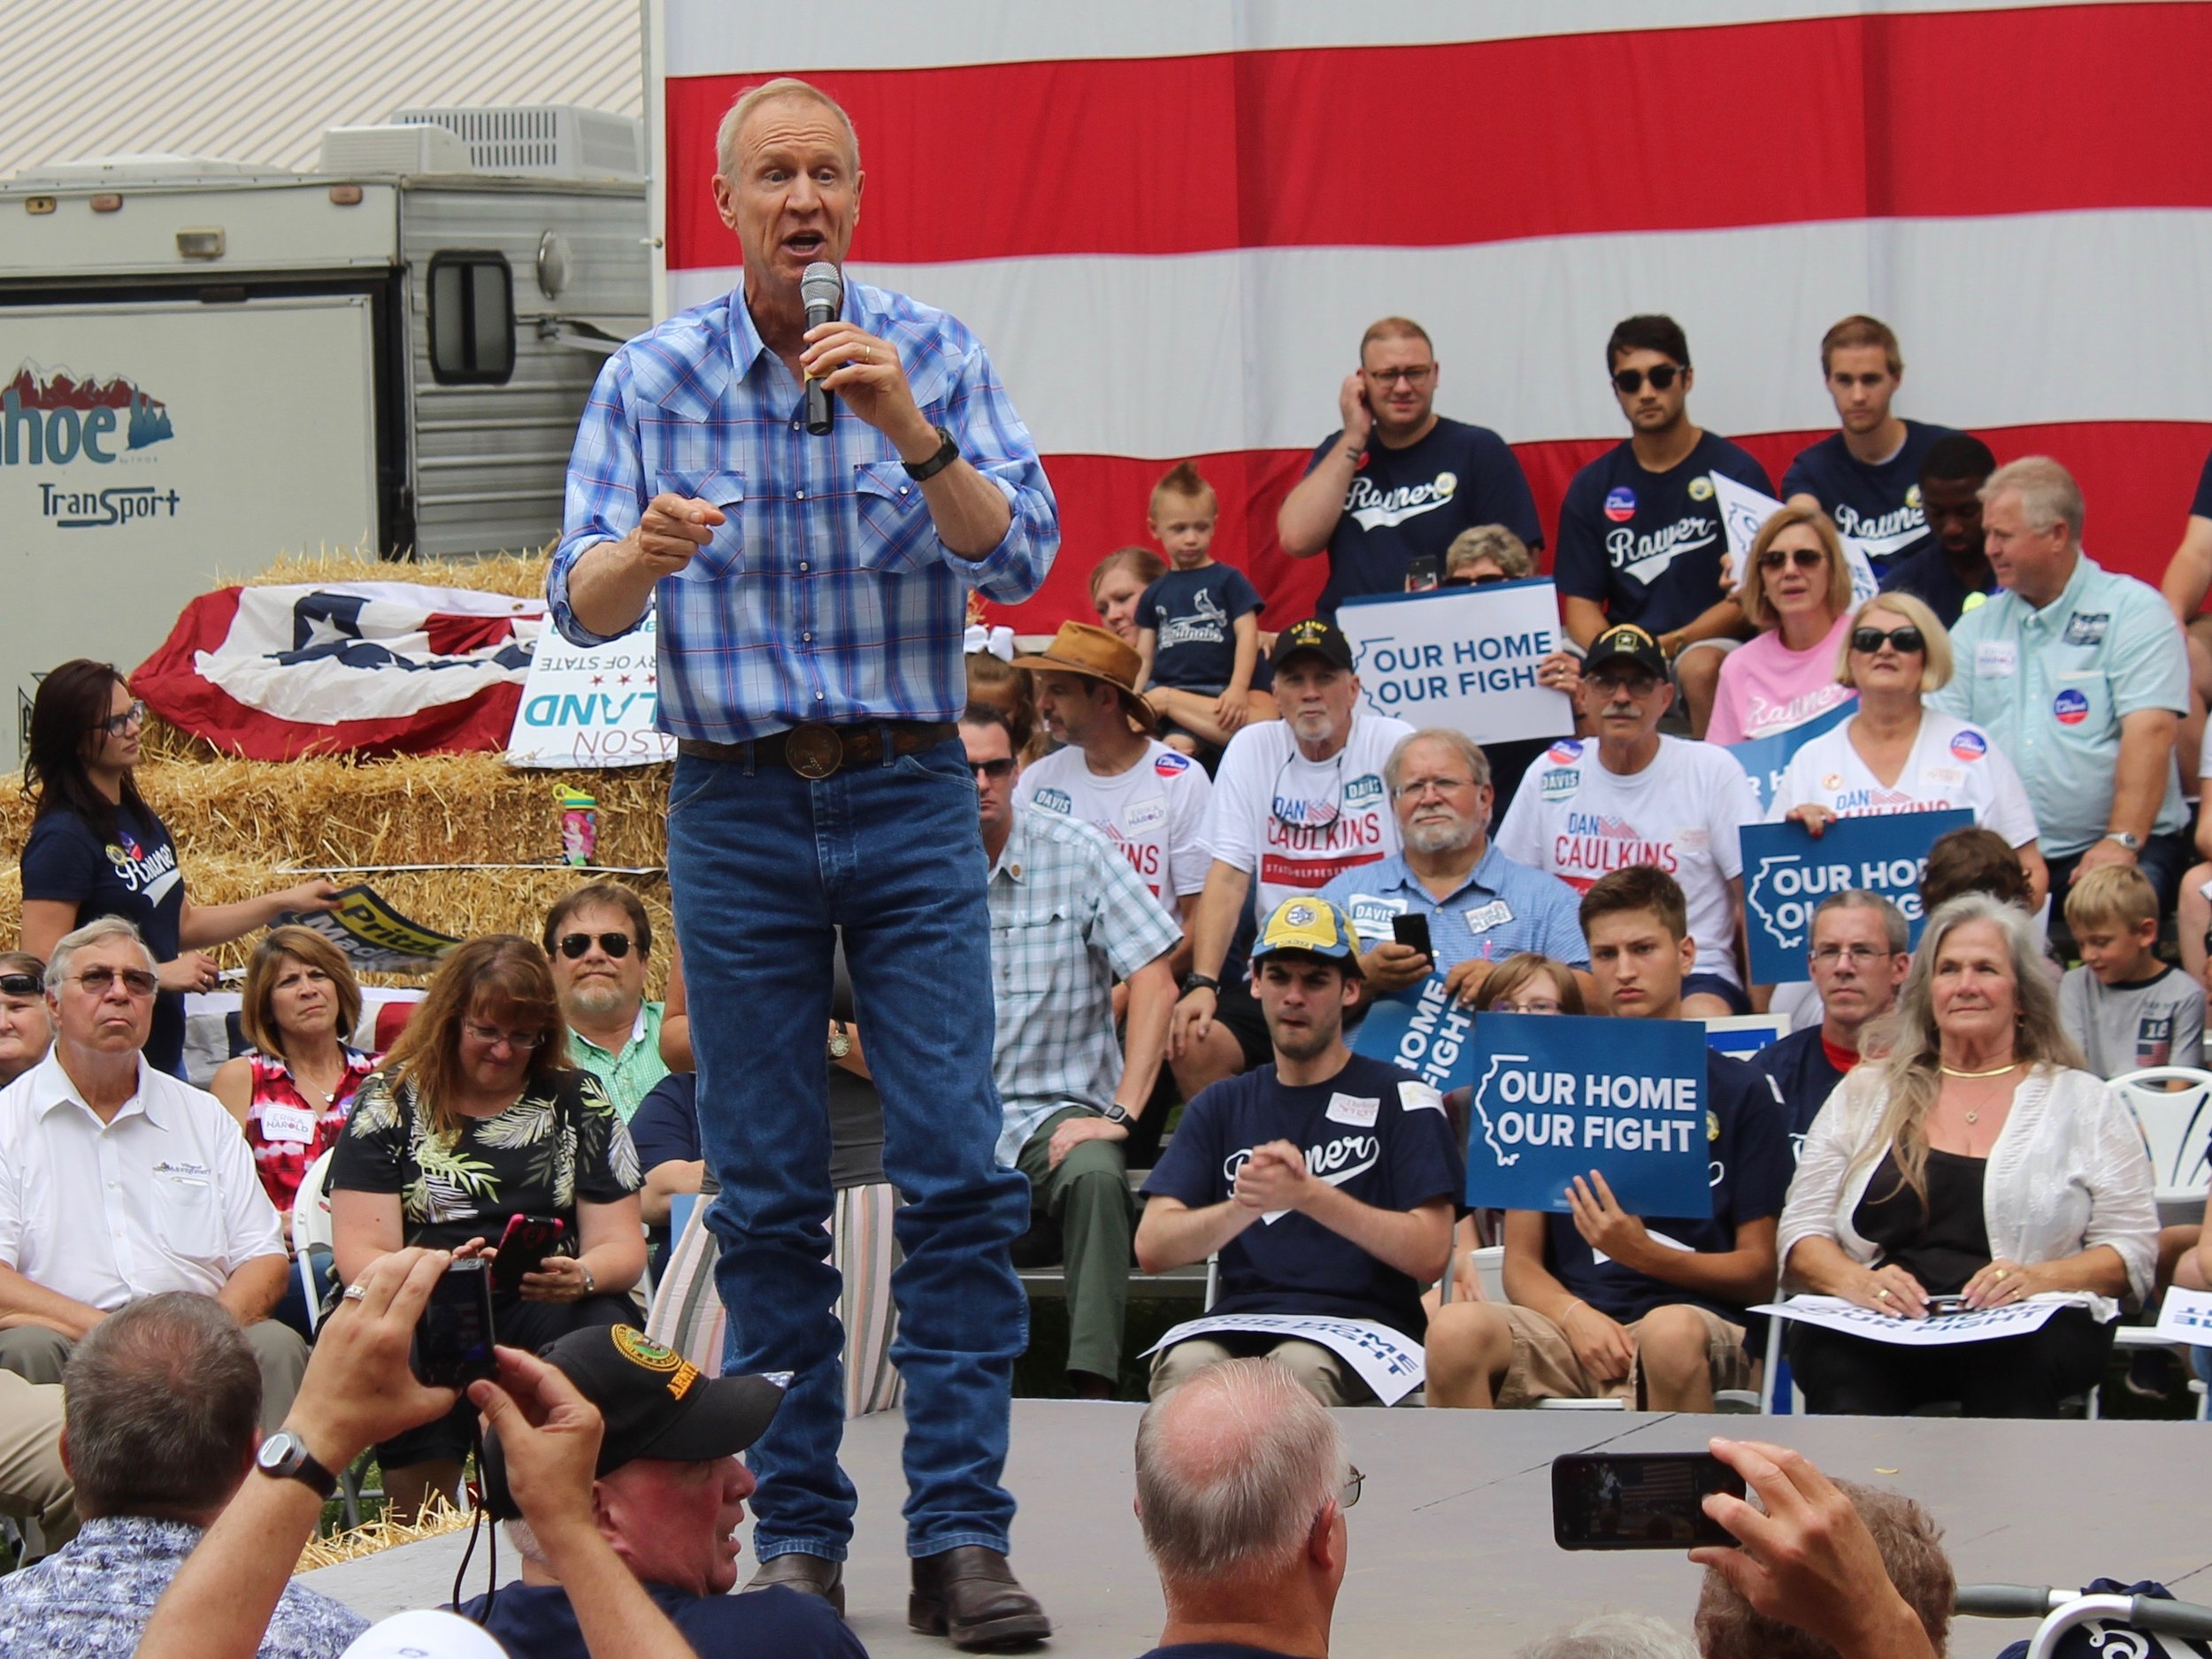 Gov. Bruce Rauner addresses partisan supporters on Governor's Day at the State Fair Wednesday. (One Illinois/Ted Cox)